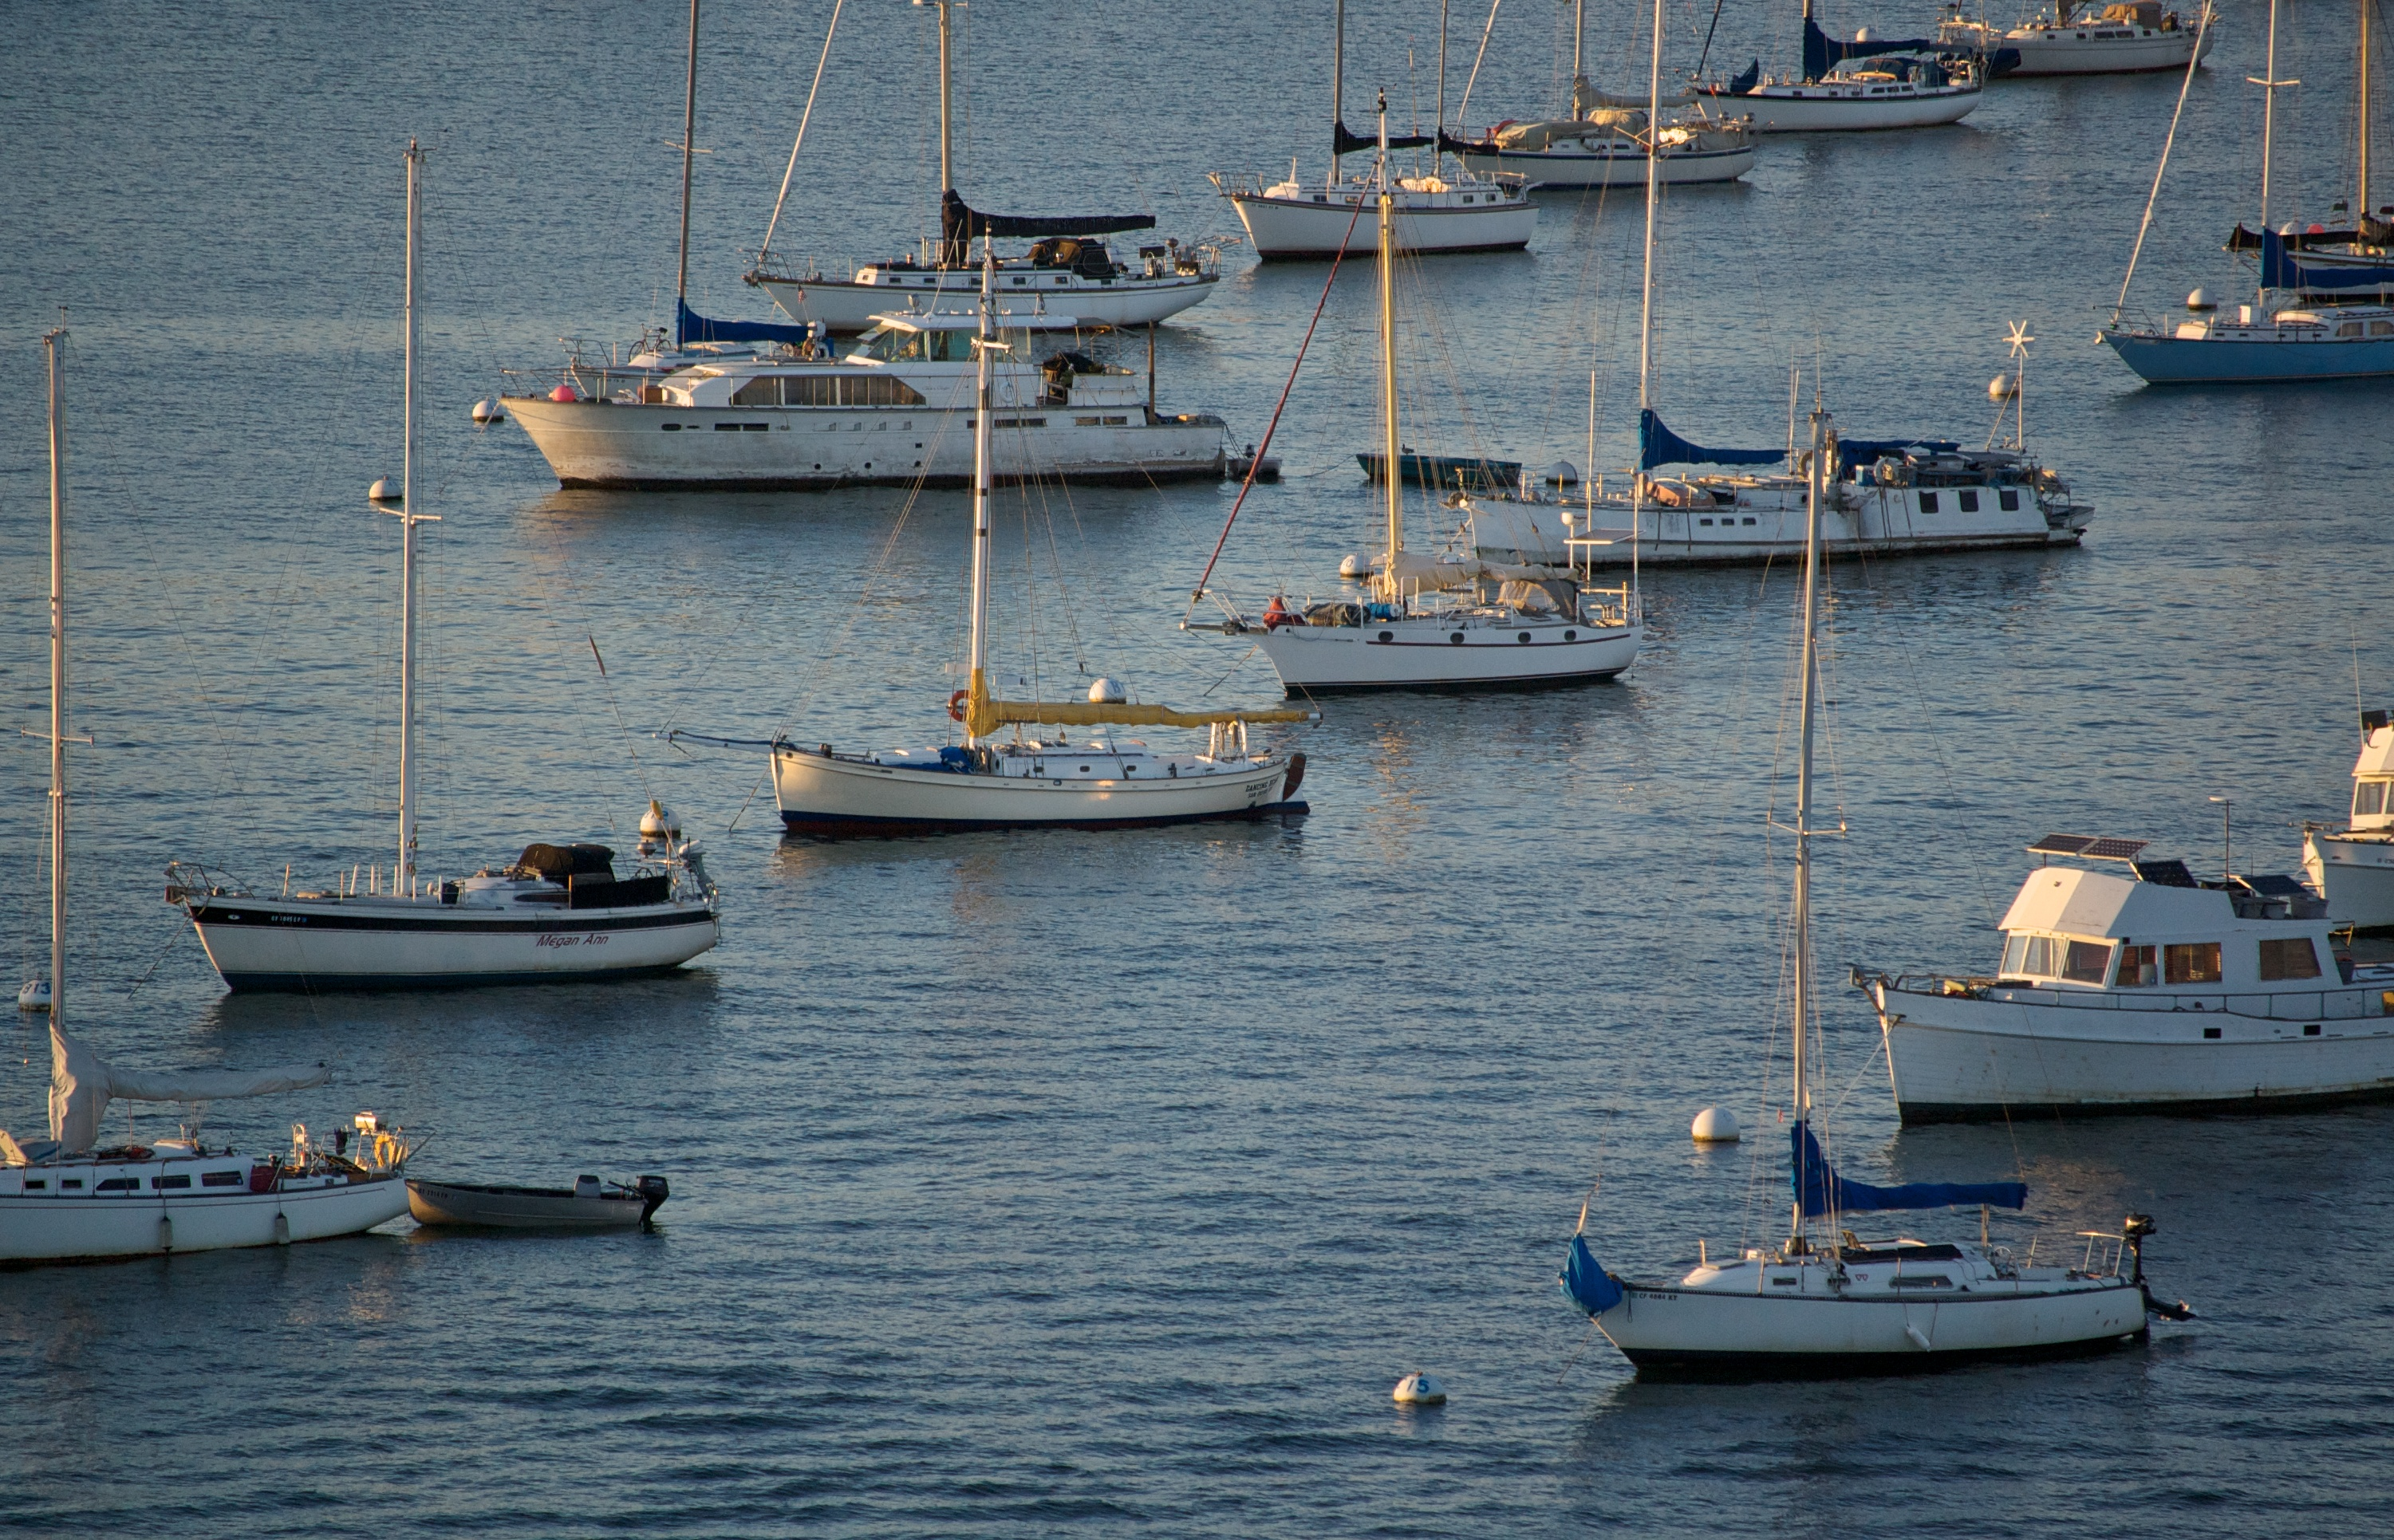 boats in a row no.2